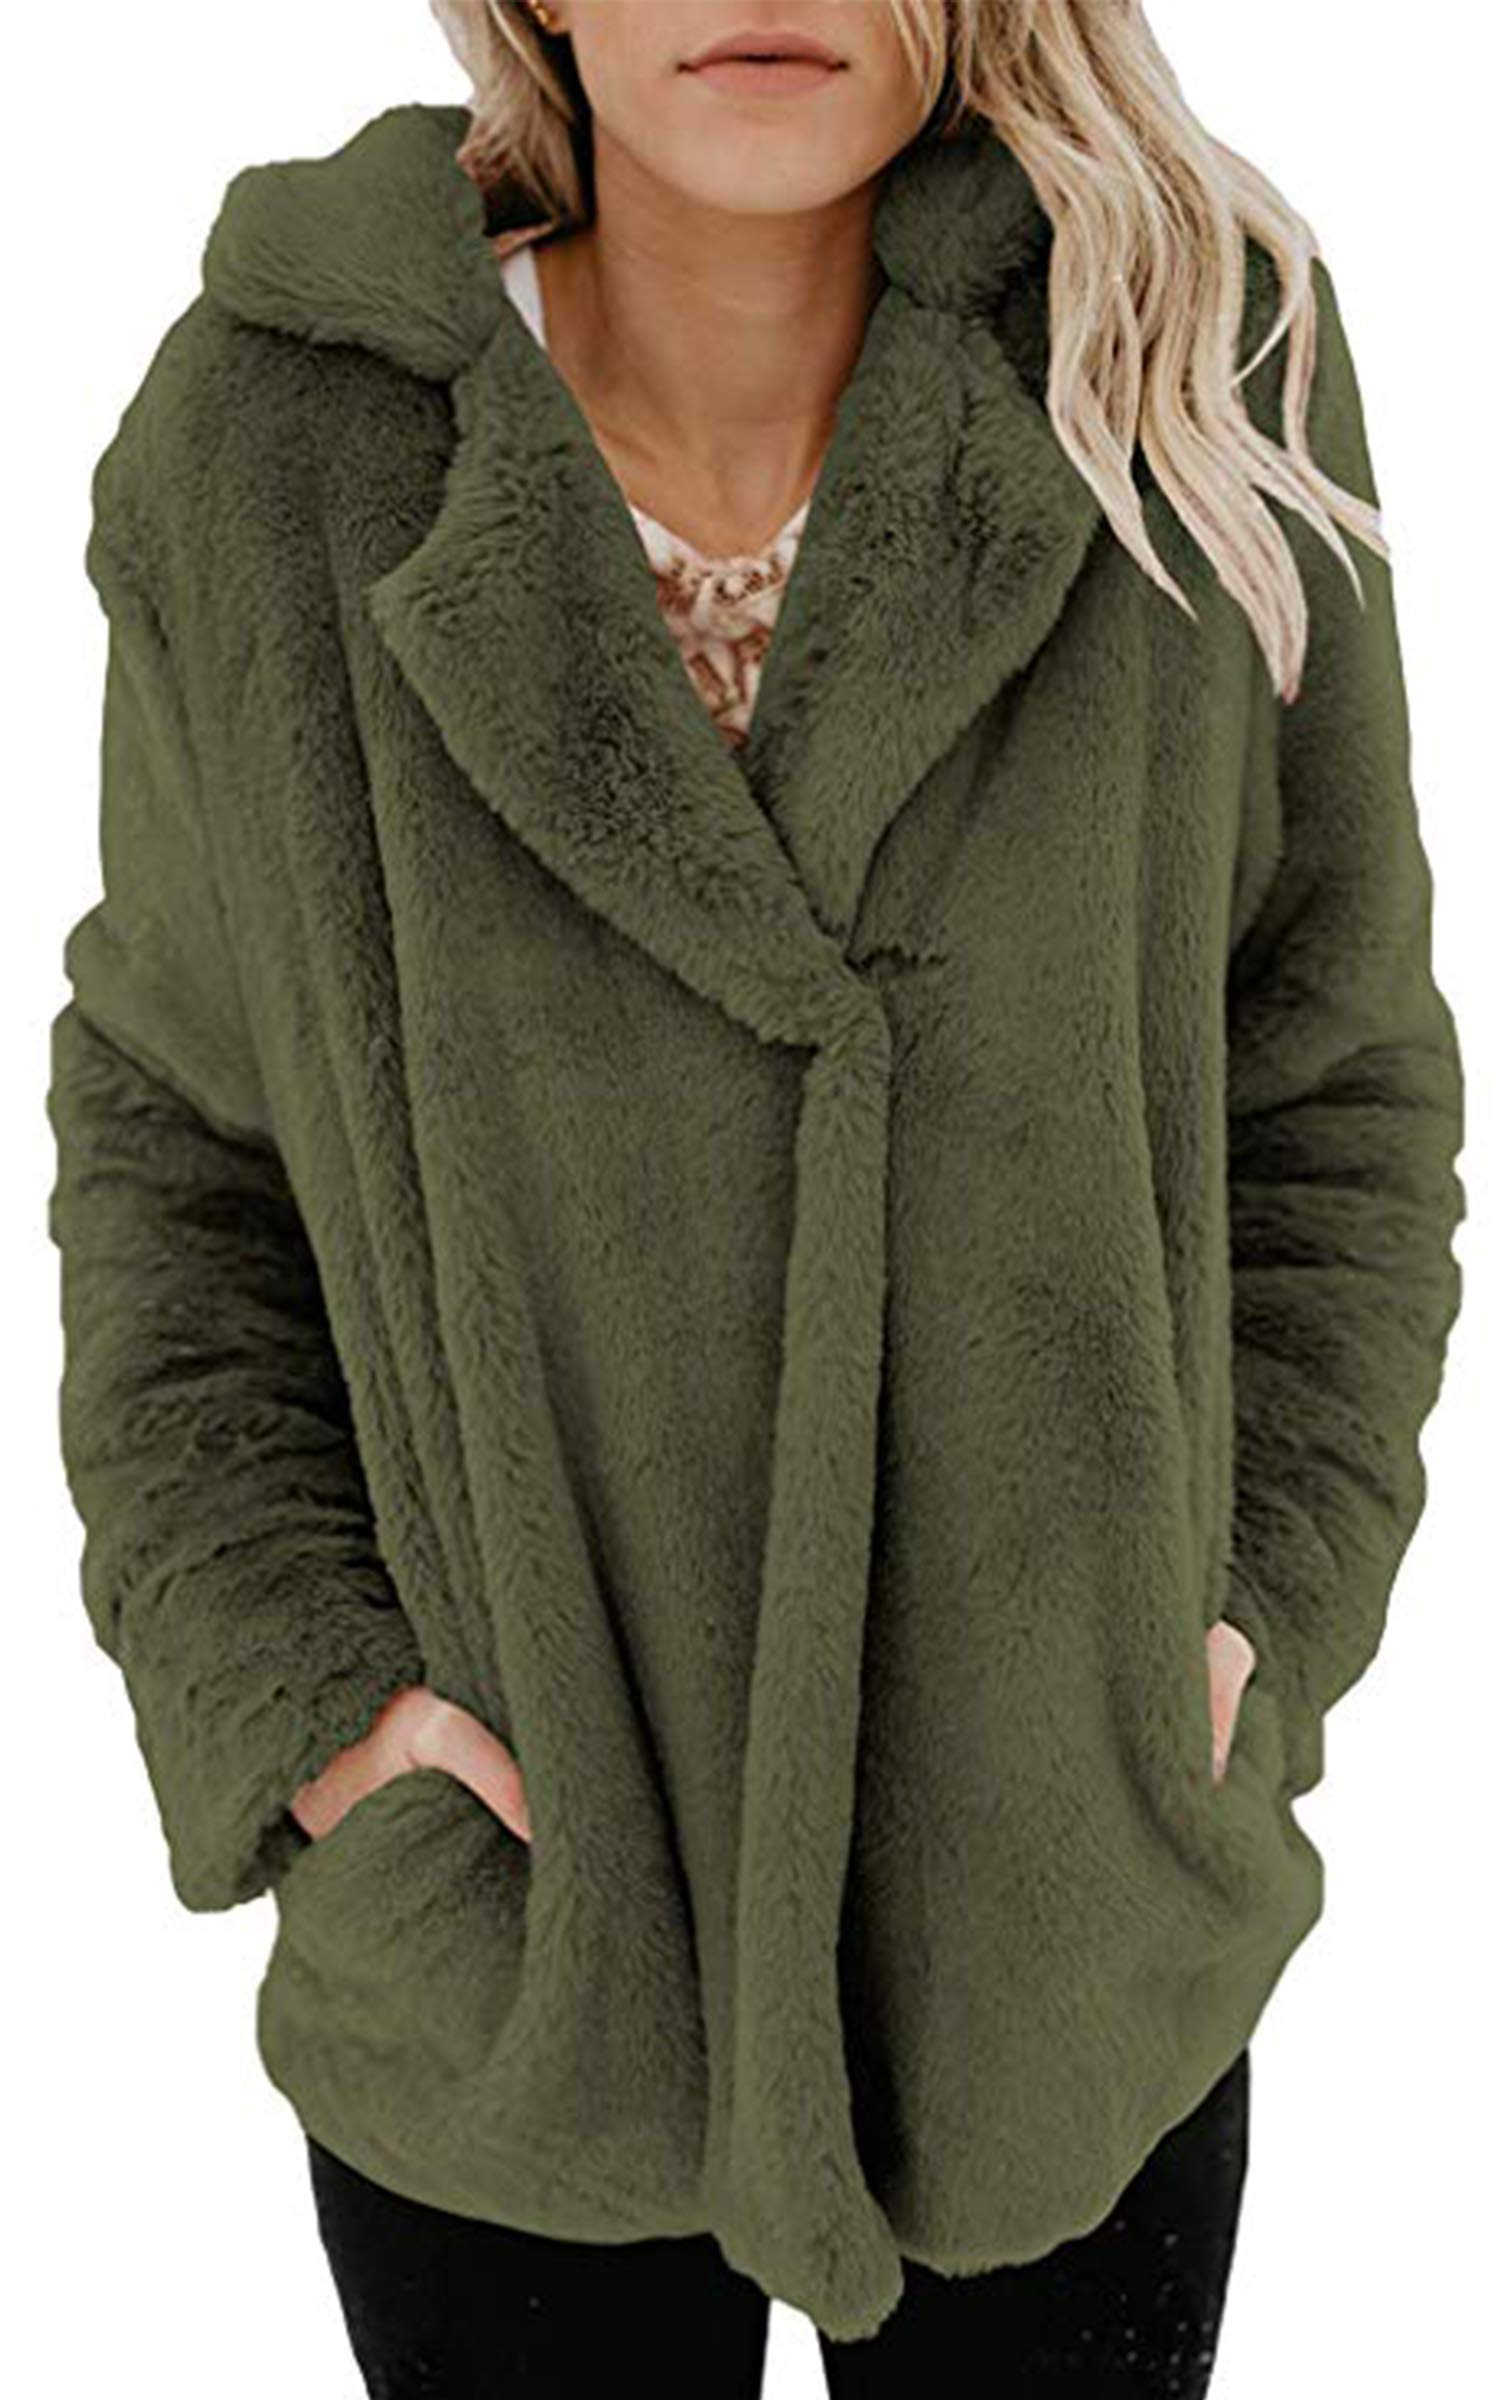 Angashion Women's Long Sleeve Lapel Faux Fur Button Oversized Warm Winter Jacket Coat Outwear with Pockets Army Green L